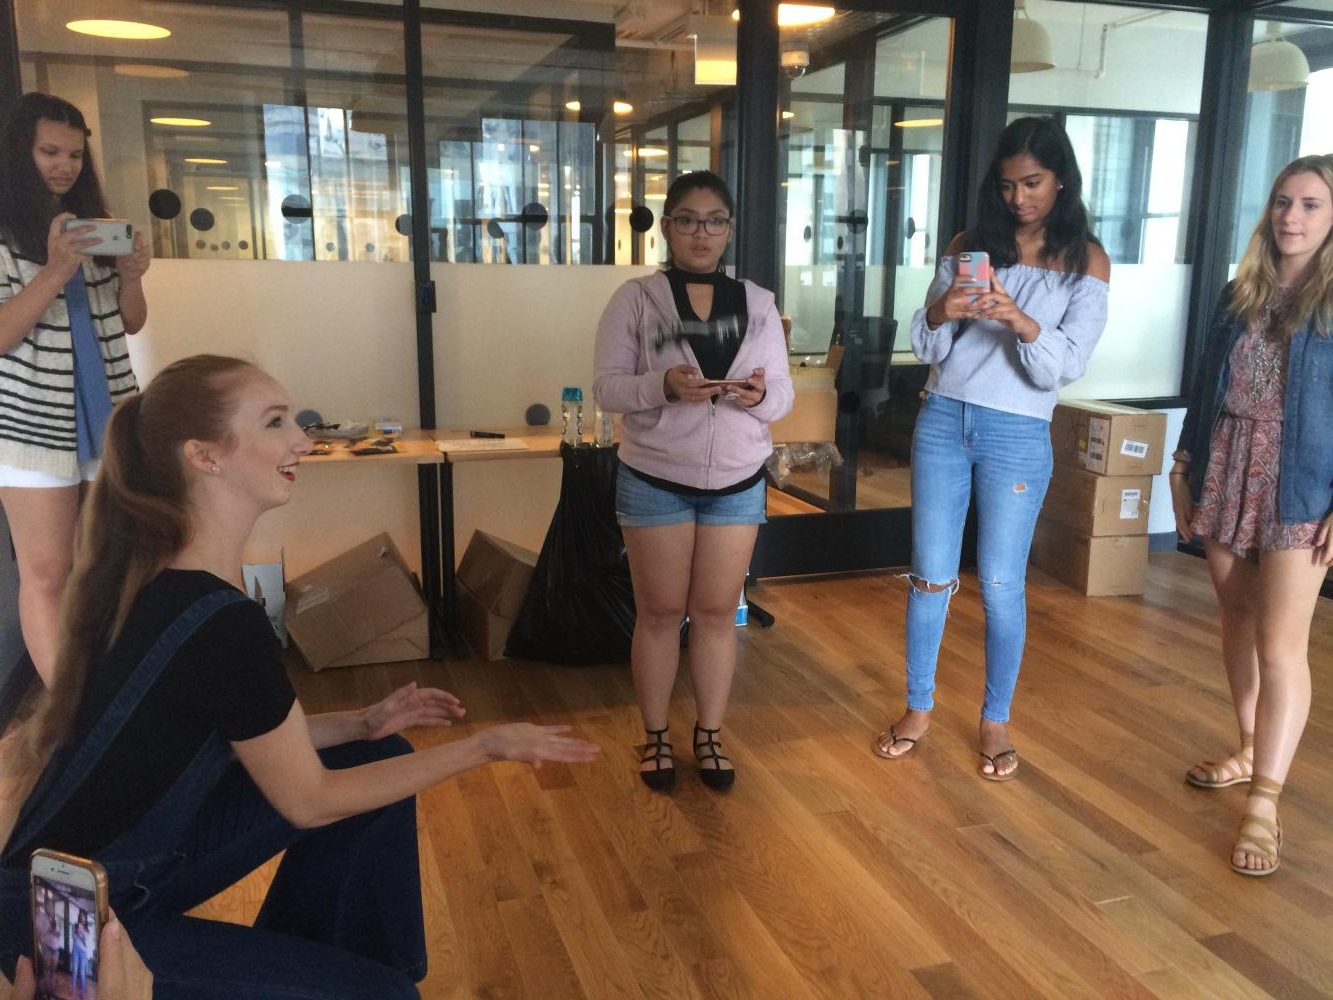 In the second week of the camp, the girls at Kode with Klossy took a break from coding to learn how to fly small drones in small groups. The focus of the day's lesson was coding in Virtual Reality, and the drones represented another new and currently advancing field of technology.